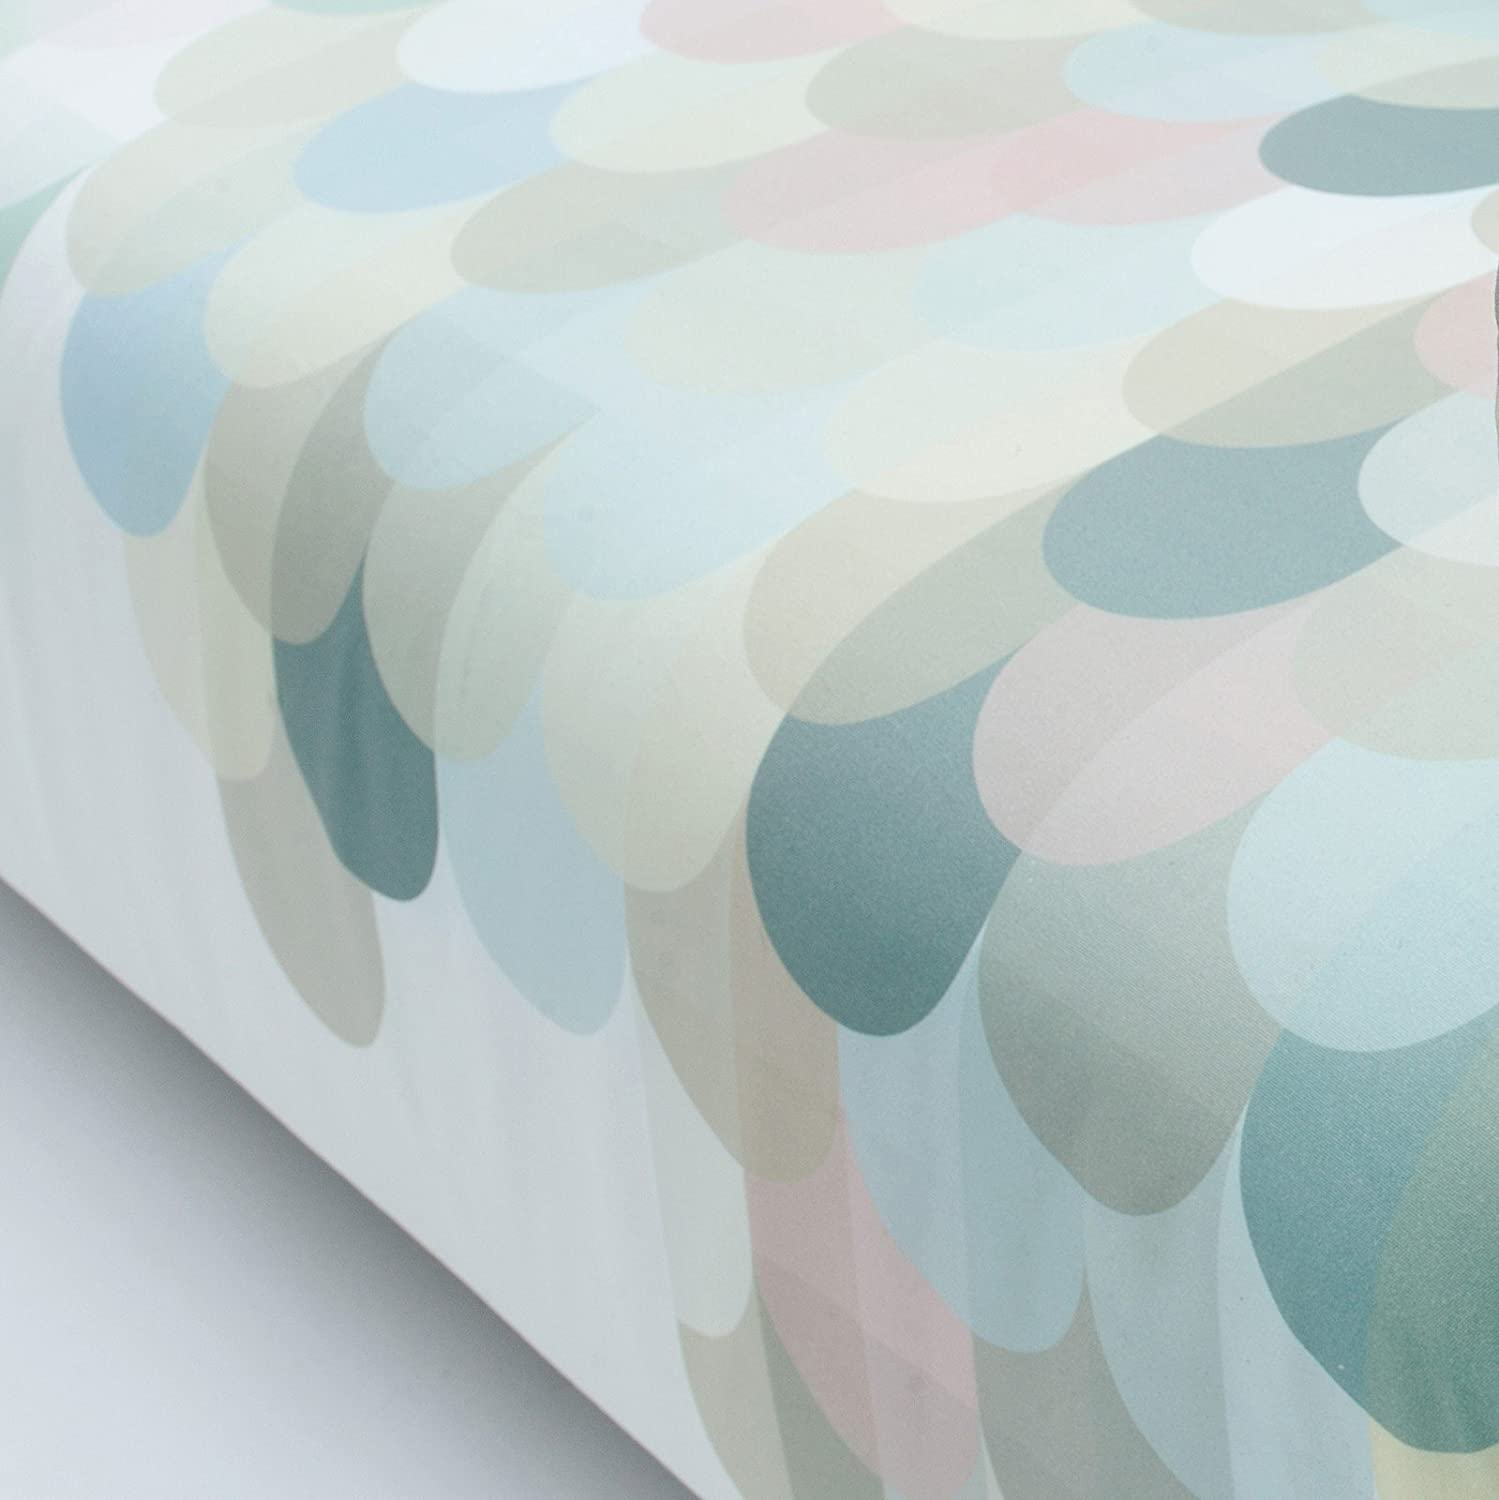 Amazon Klippan Slipcover & Pillow Cover PASTEL design fits